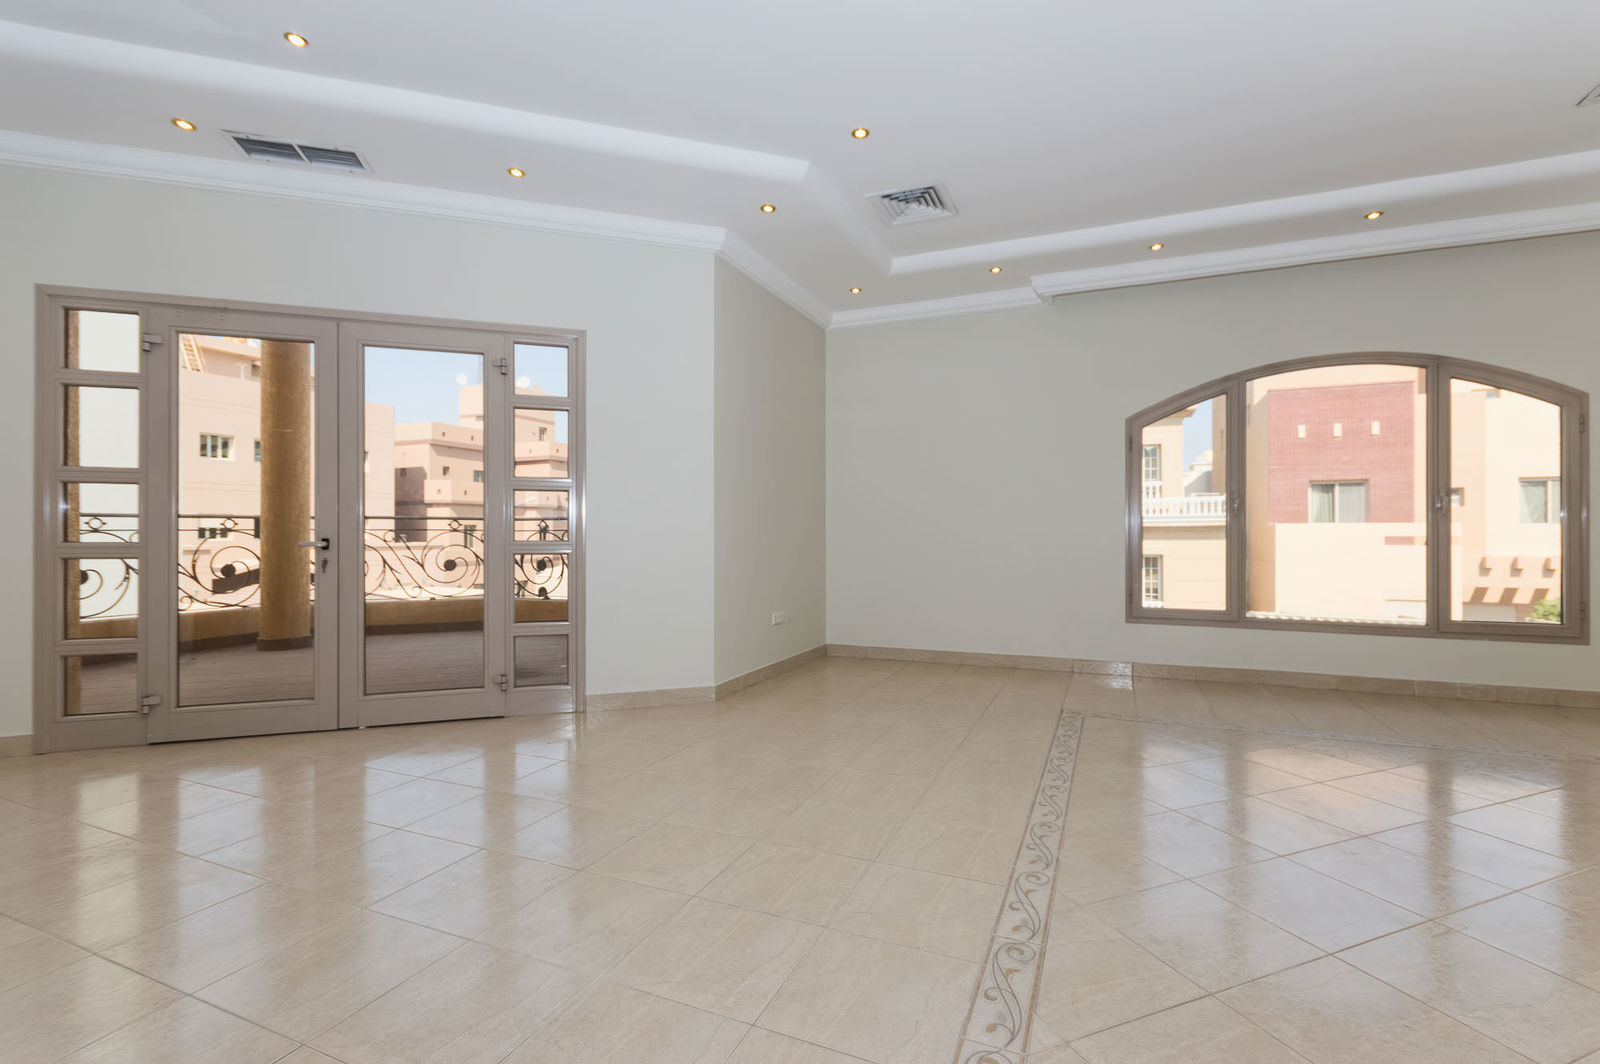 Shuhada – very nice, large, three bedroom floor w/balcony